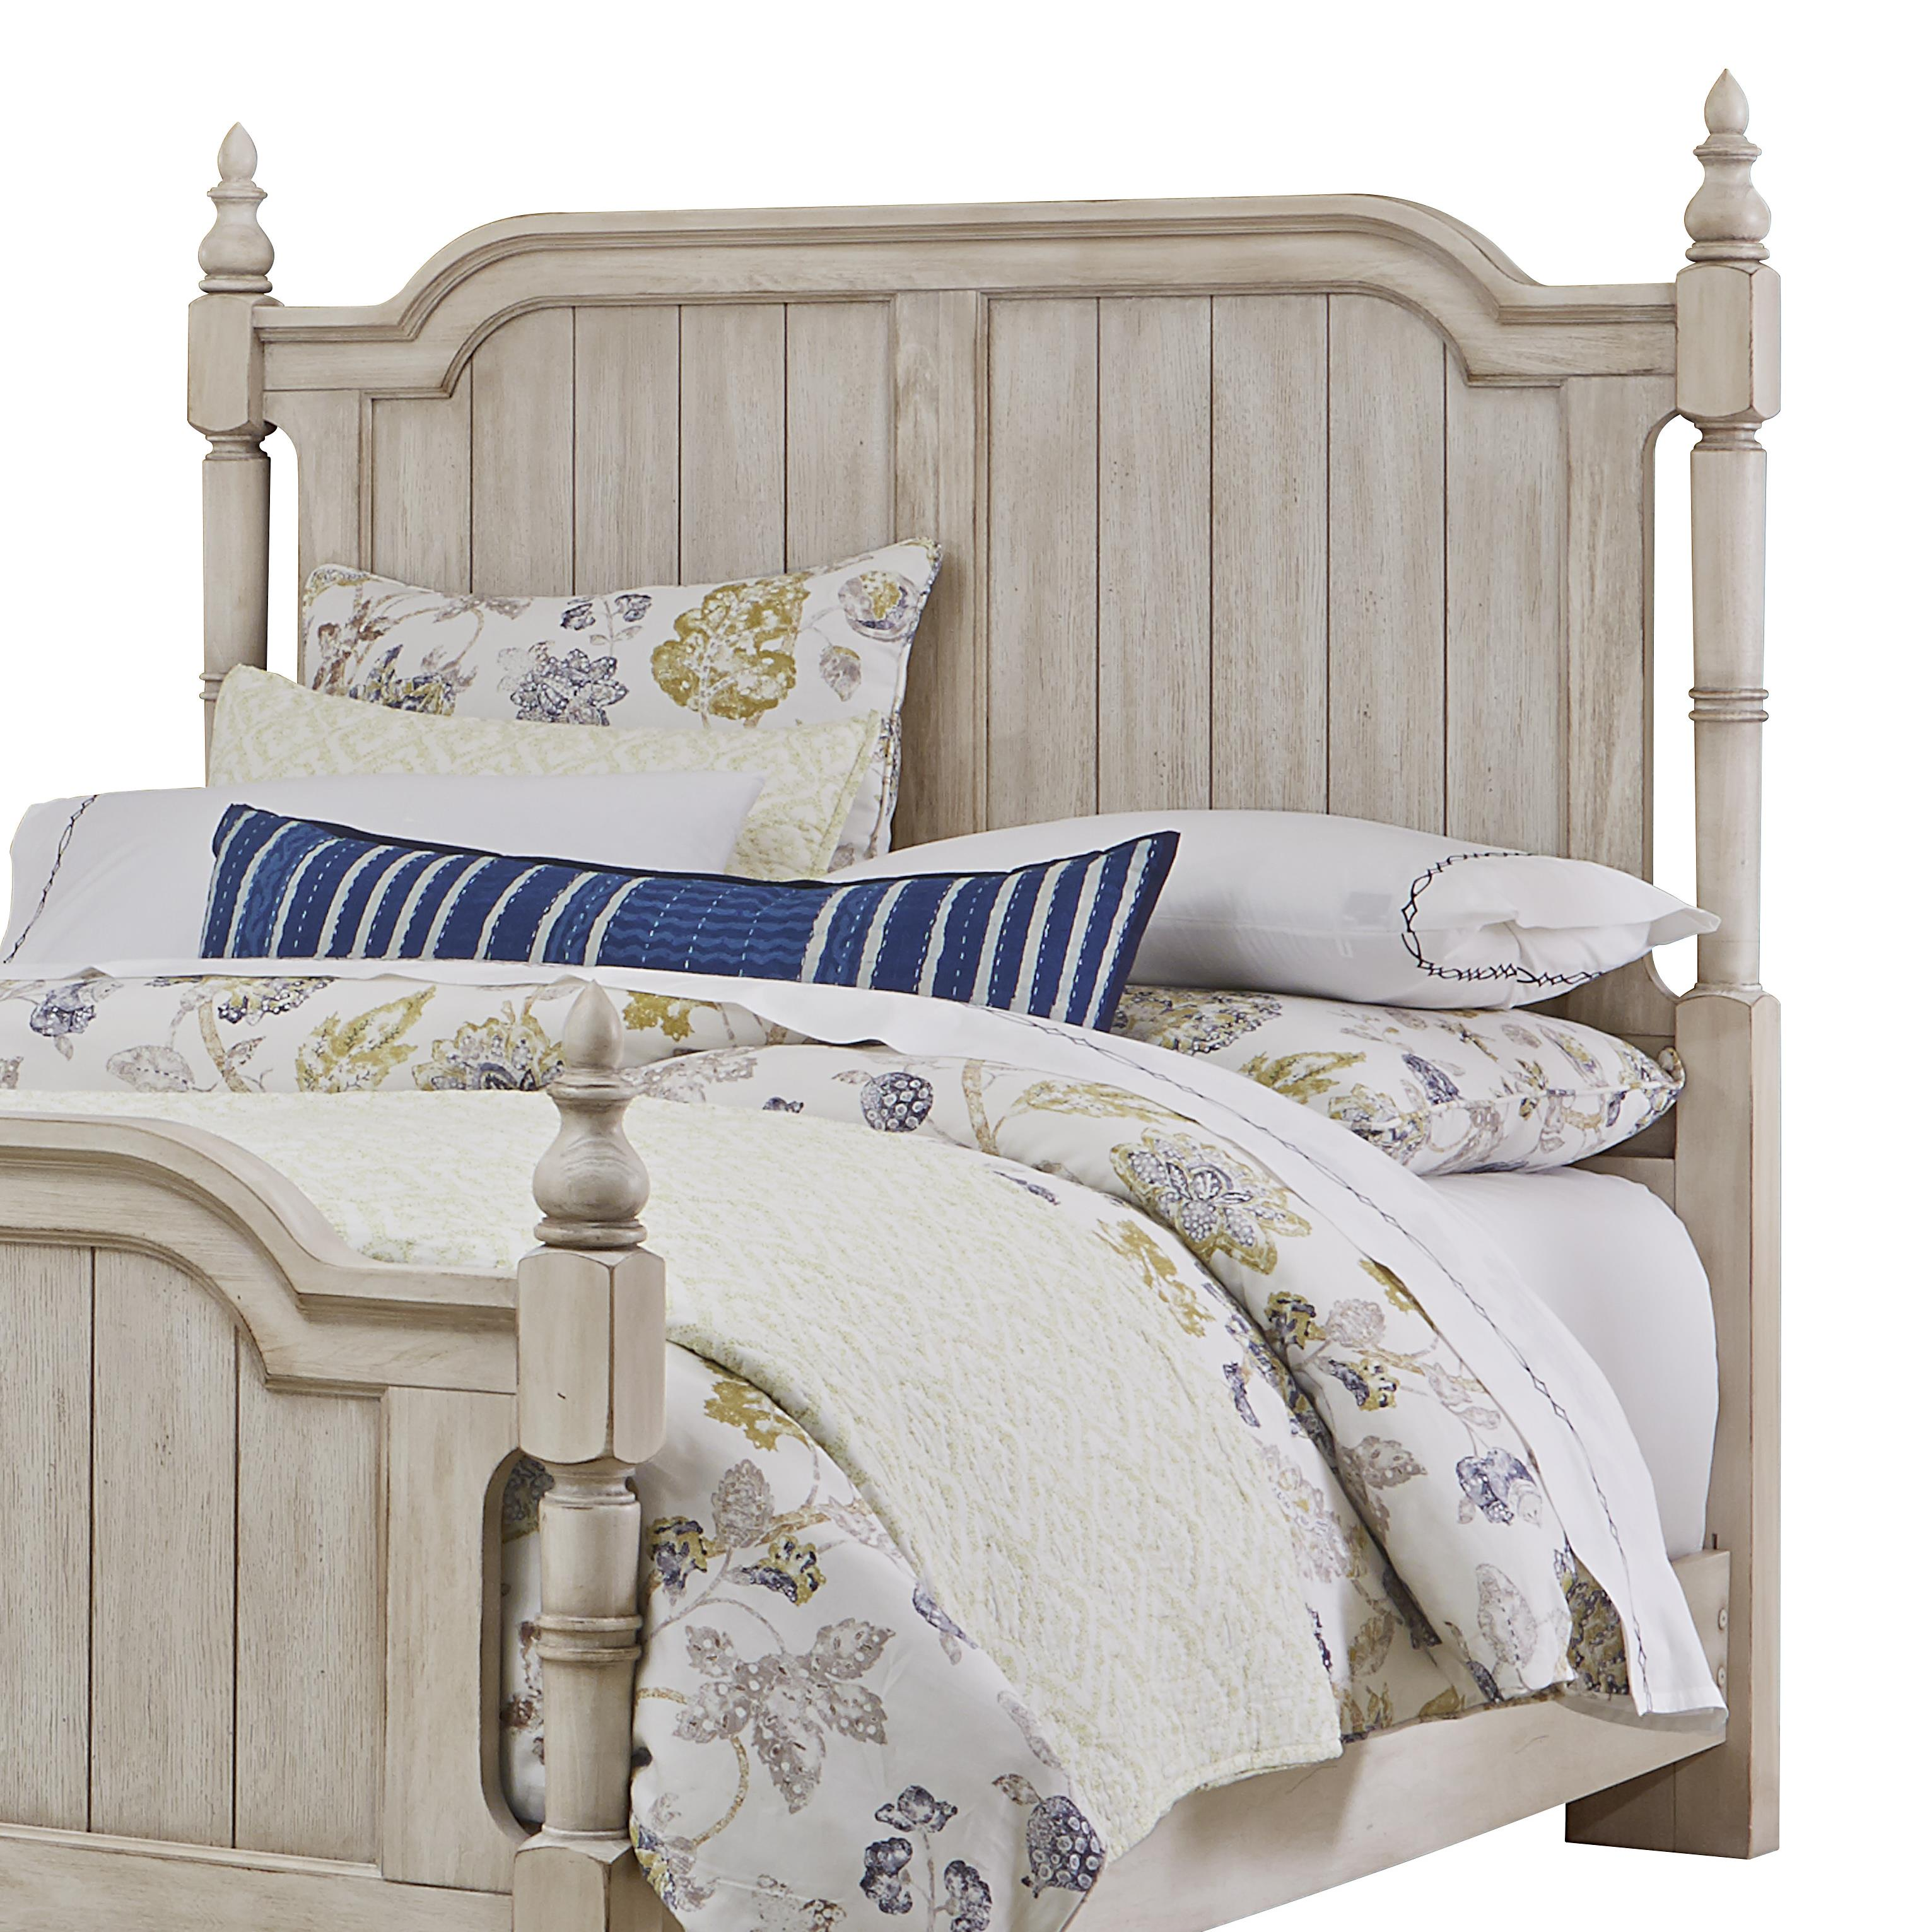 Vaughan Bassett Arrendelle Queen Poster Headboard - Item Number: 442-559